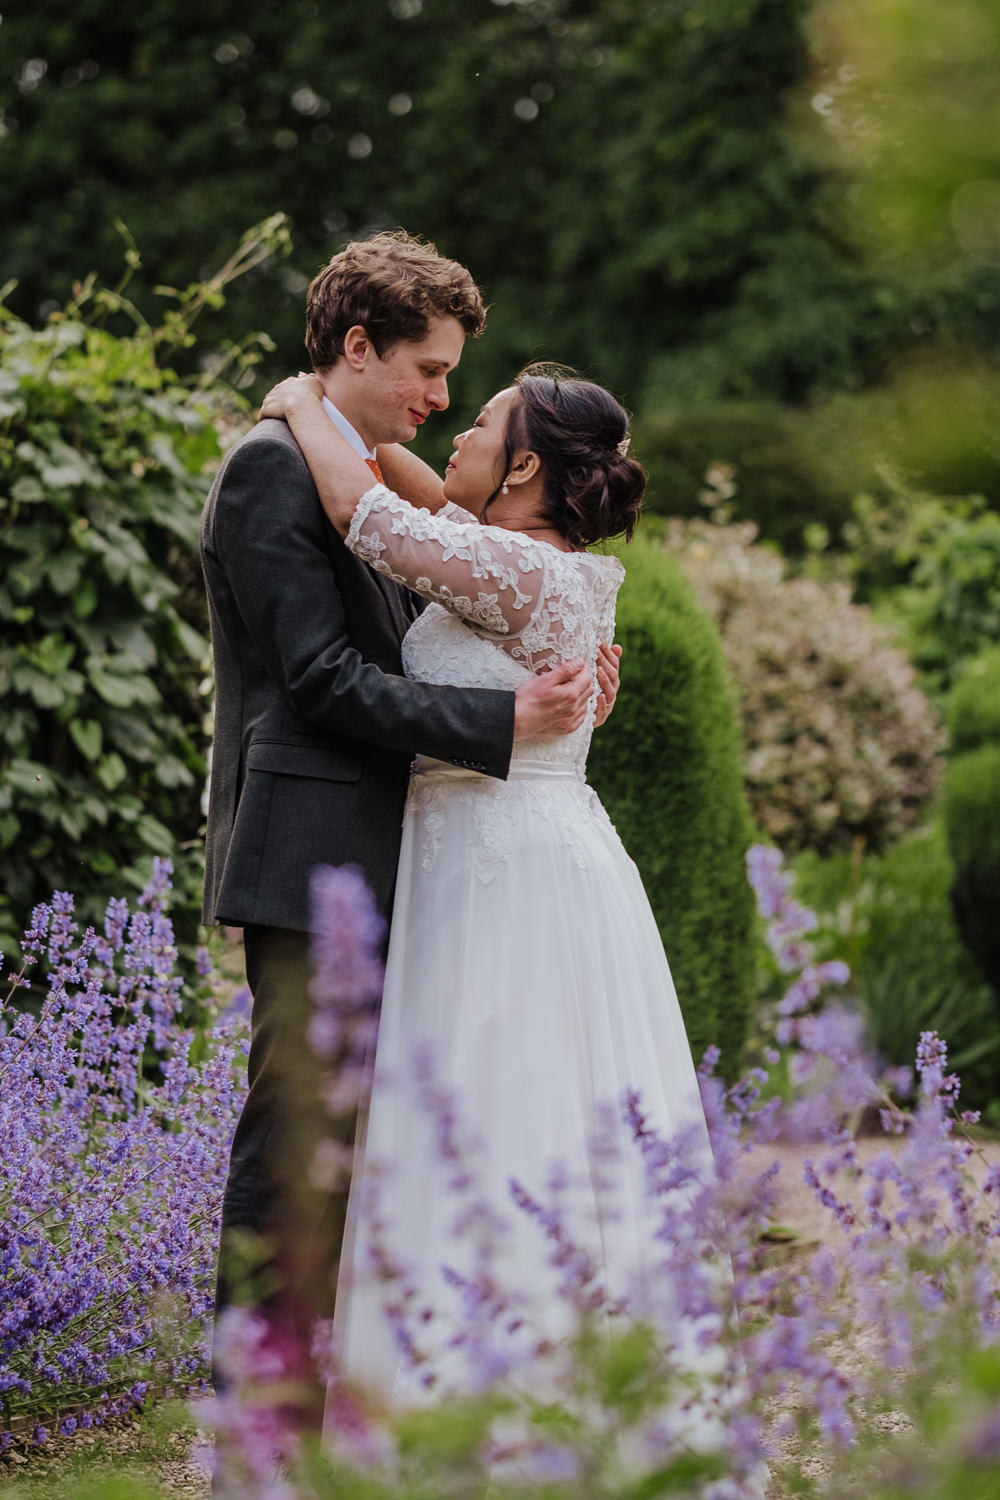 Bride Bridal Lace Long Sleeve Full Skirt Olive Suit Groom Oakwell Hall Wedding Jenna Kathleen Photographer